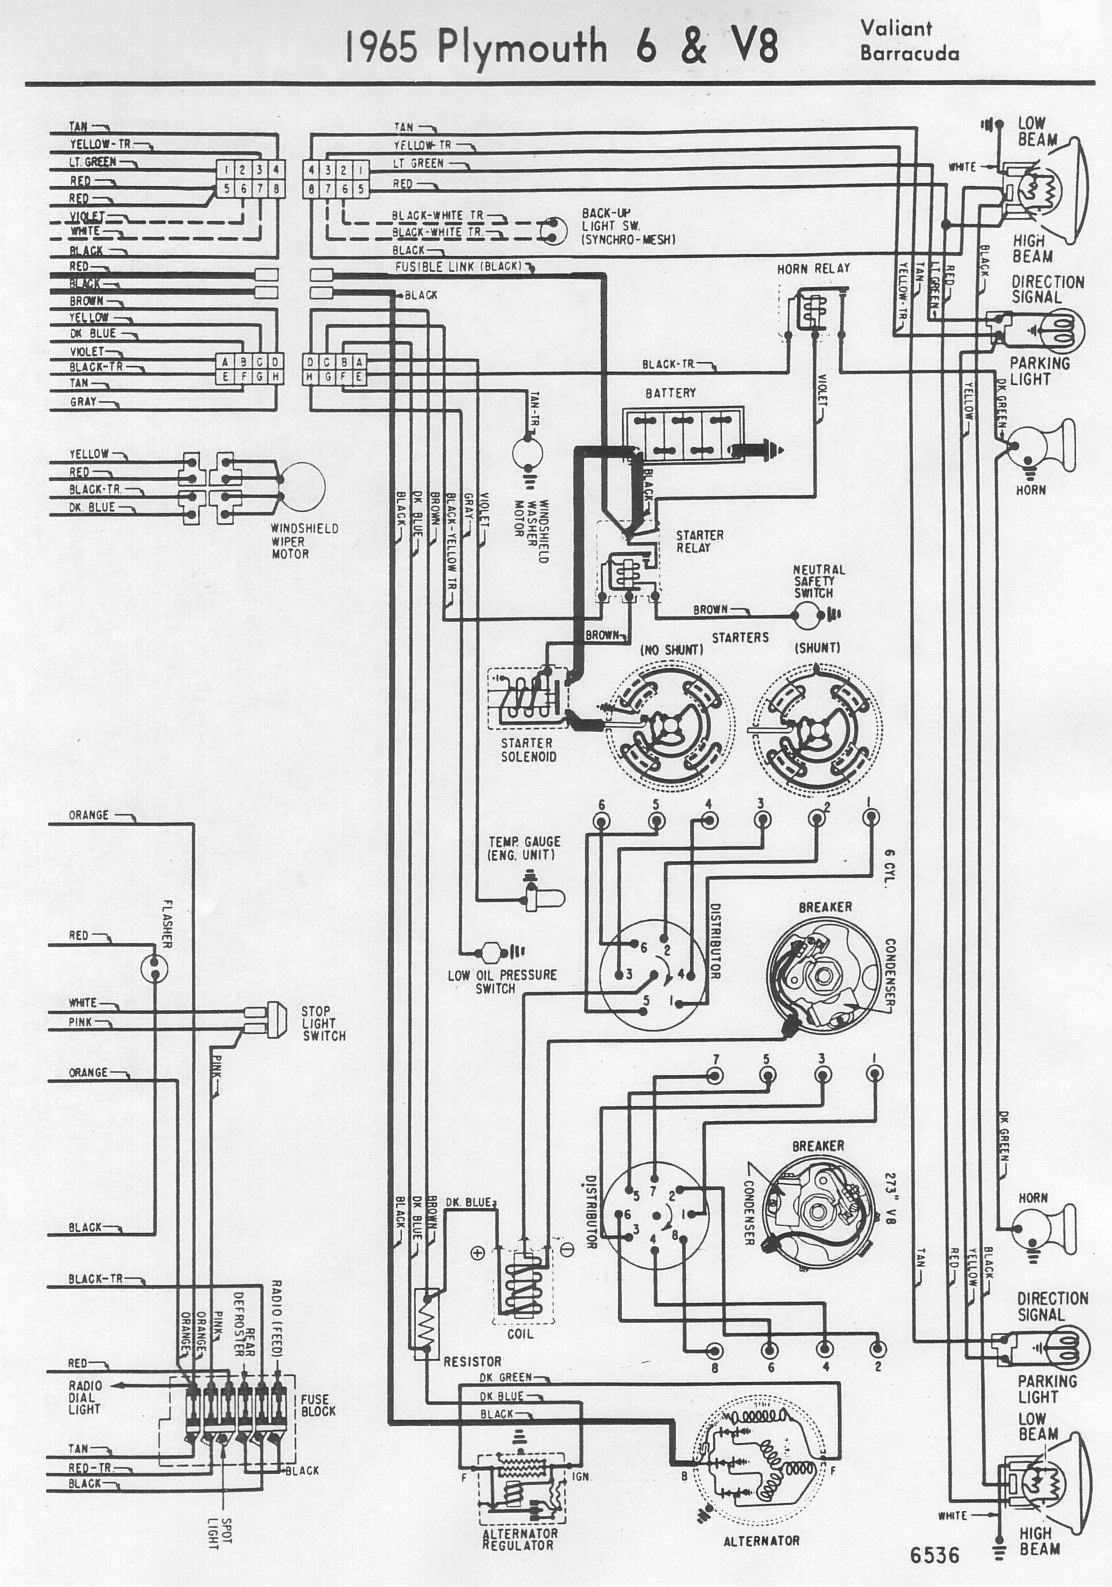 [DIAGRAM] 69 Plymouth Roadrunner Wiring Diagram Schematic